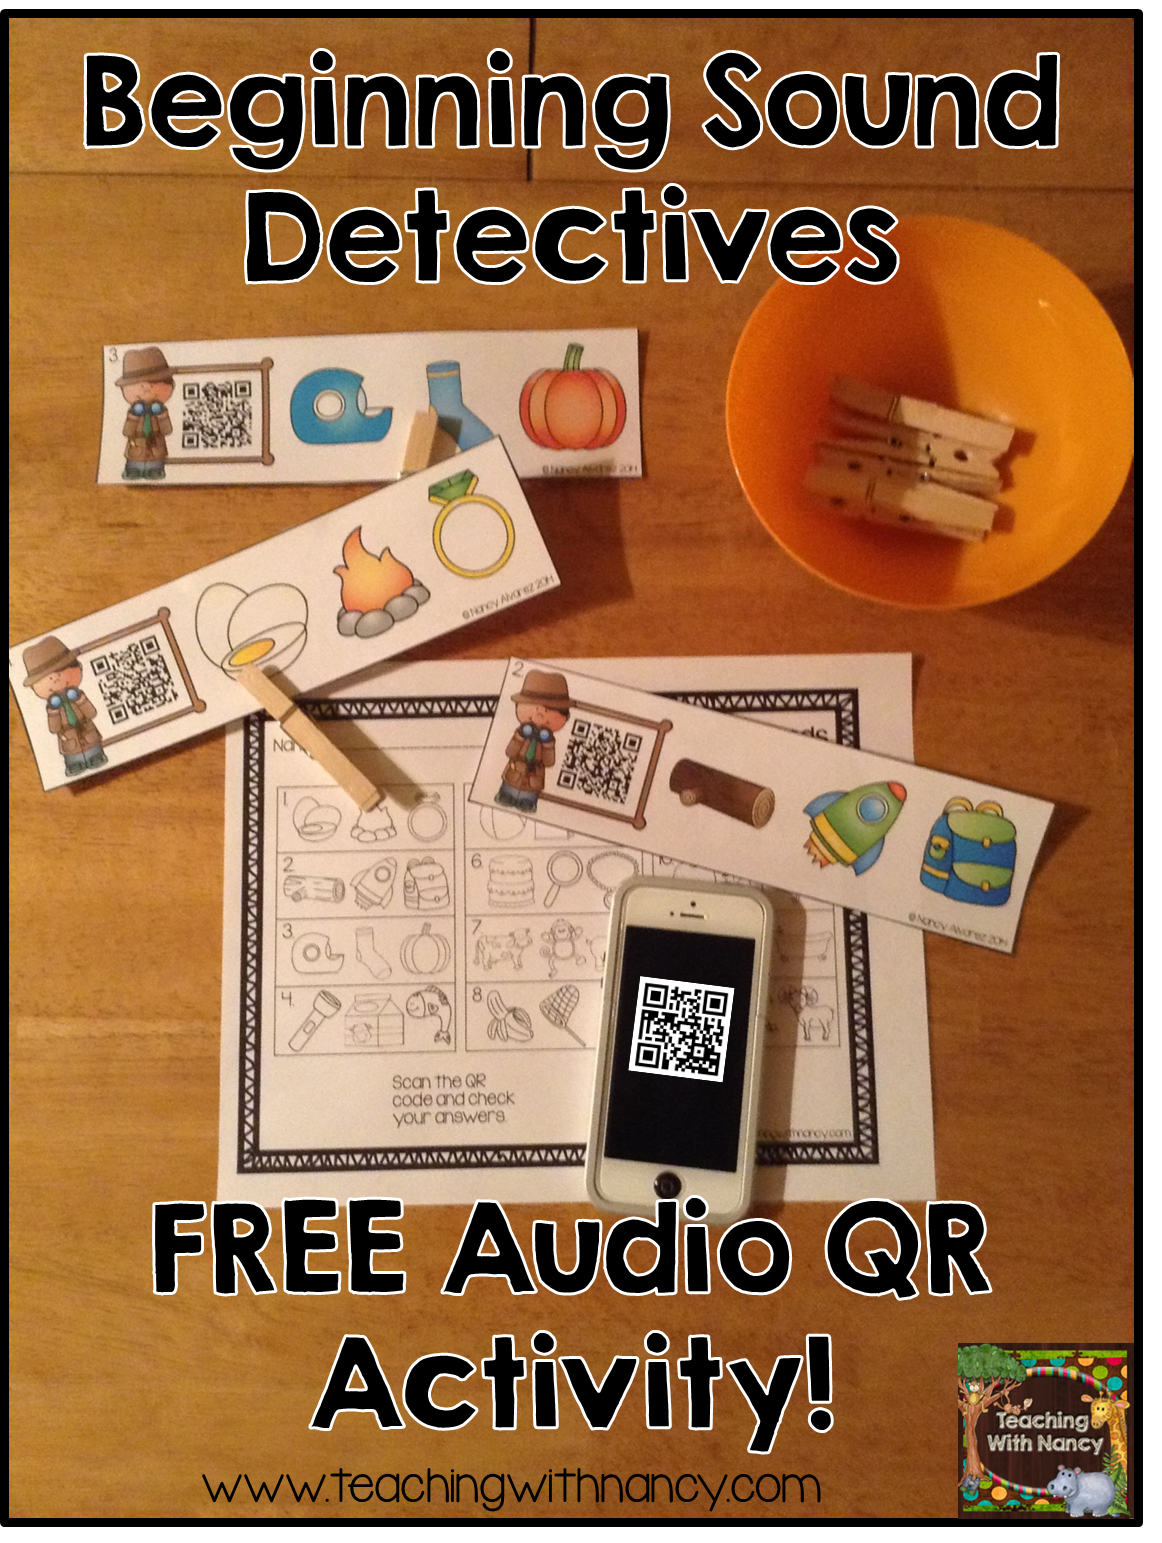 Beginning Sound Detectives Free Qr Code Activity